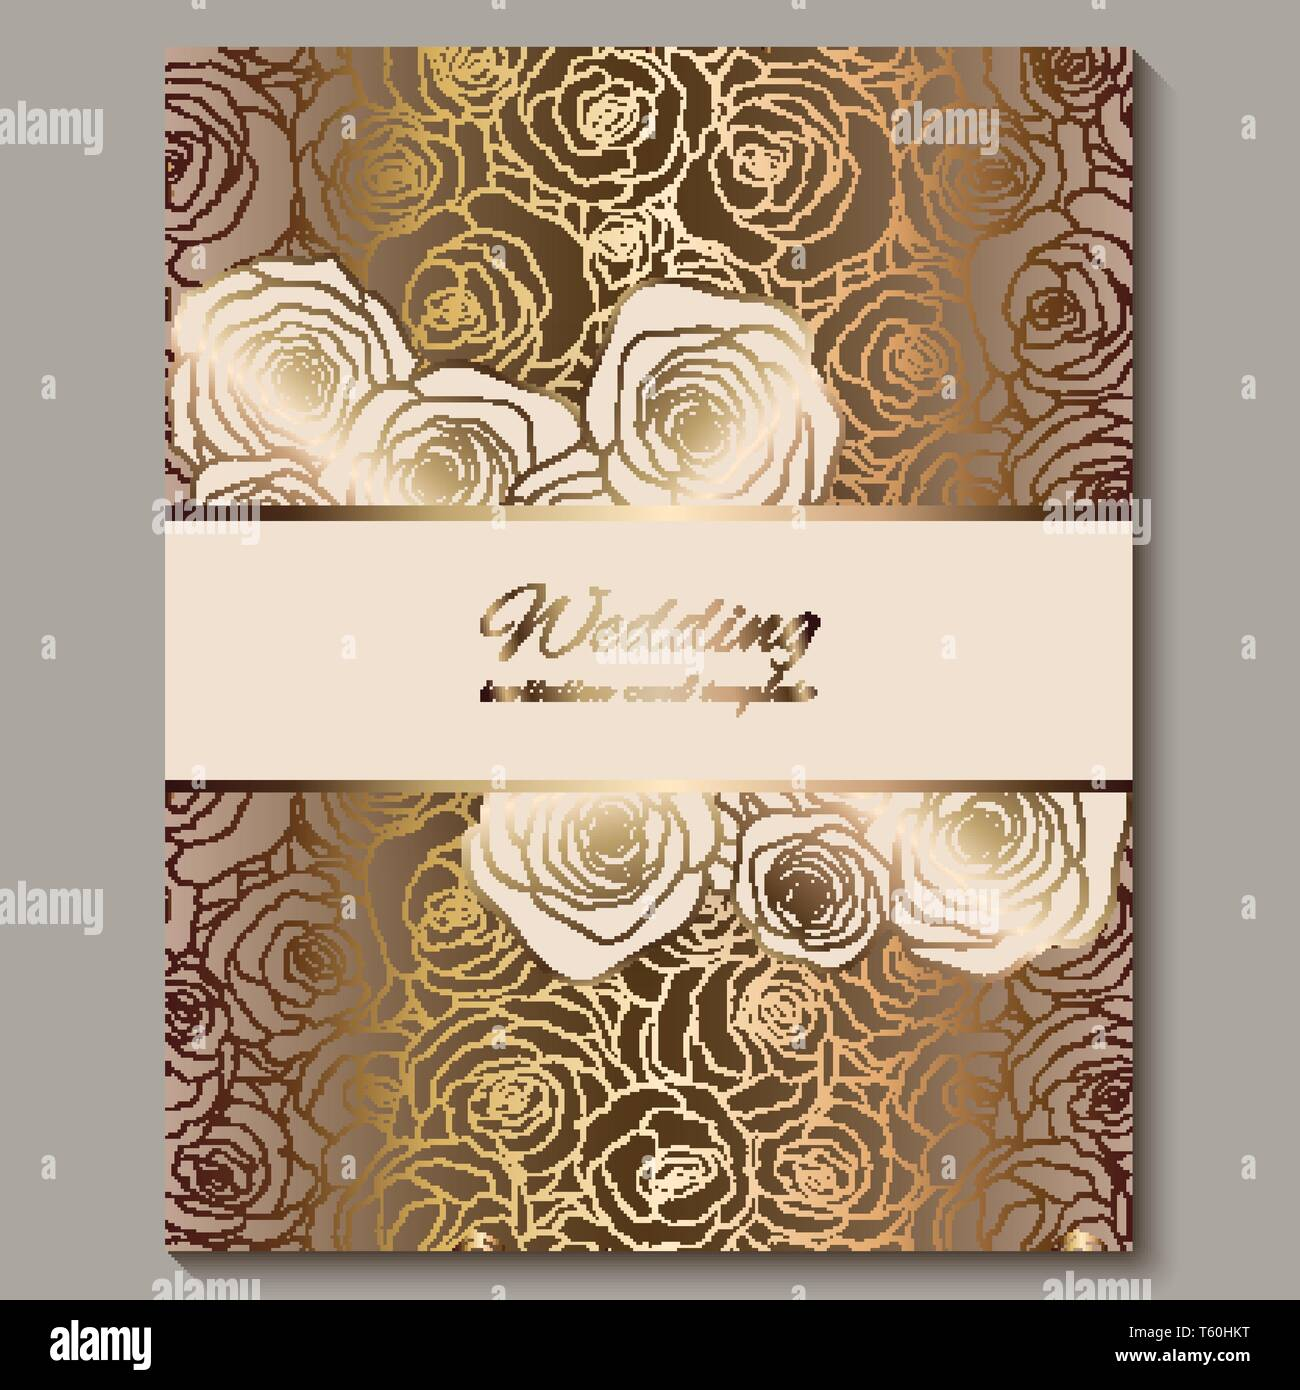 luxury gold vintage wedding invitation floral background with place for text lacy foliage made of roses with golden shiny gradient victorian wallpa stock vector image art alamy alamy